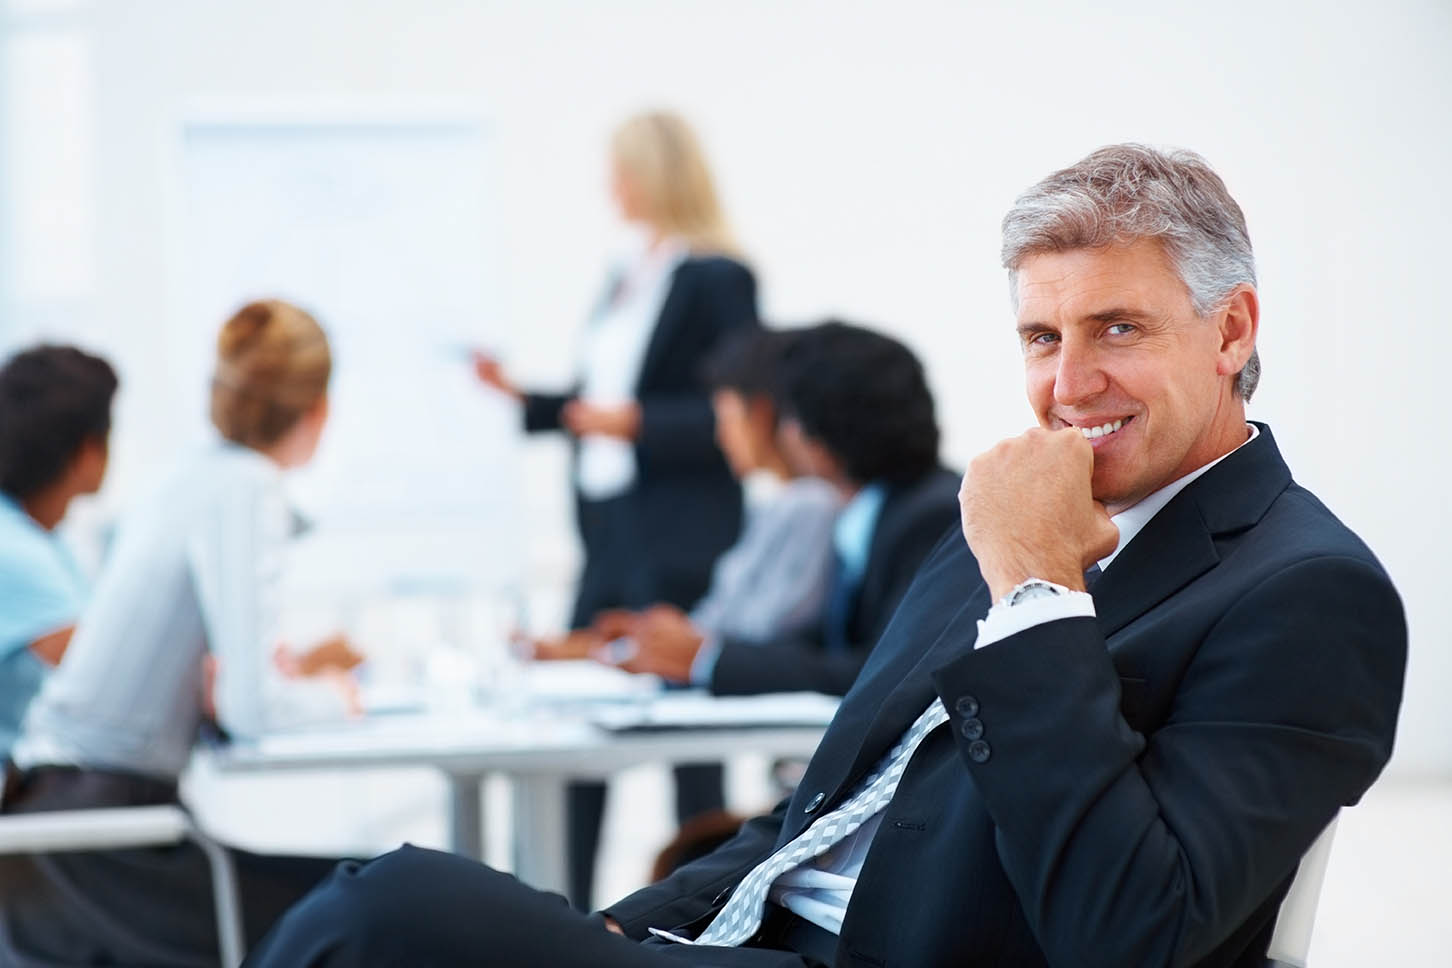 Learn Six Sigma For Your Career in Quality Improvement